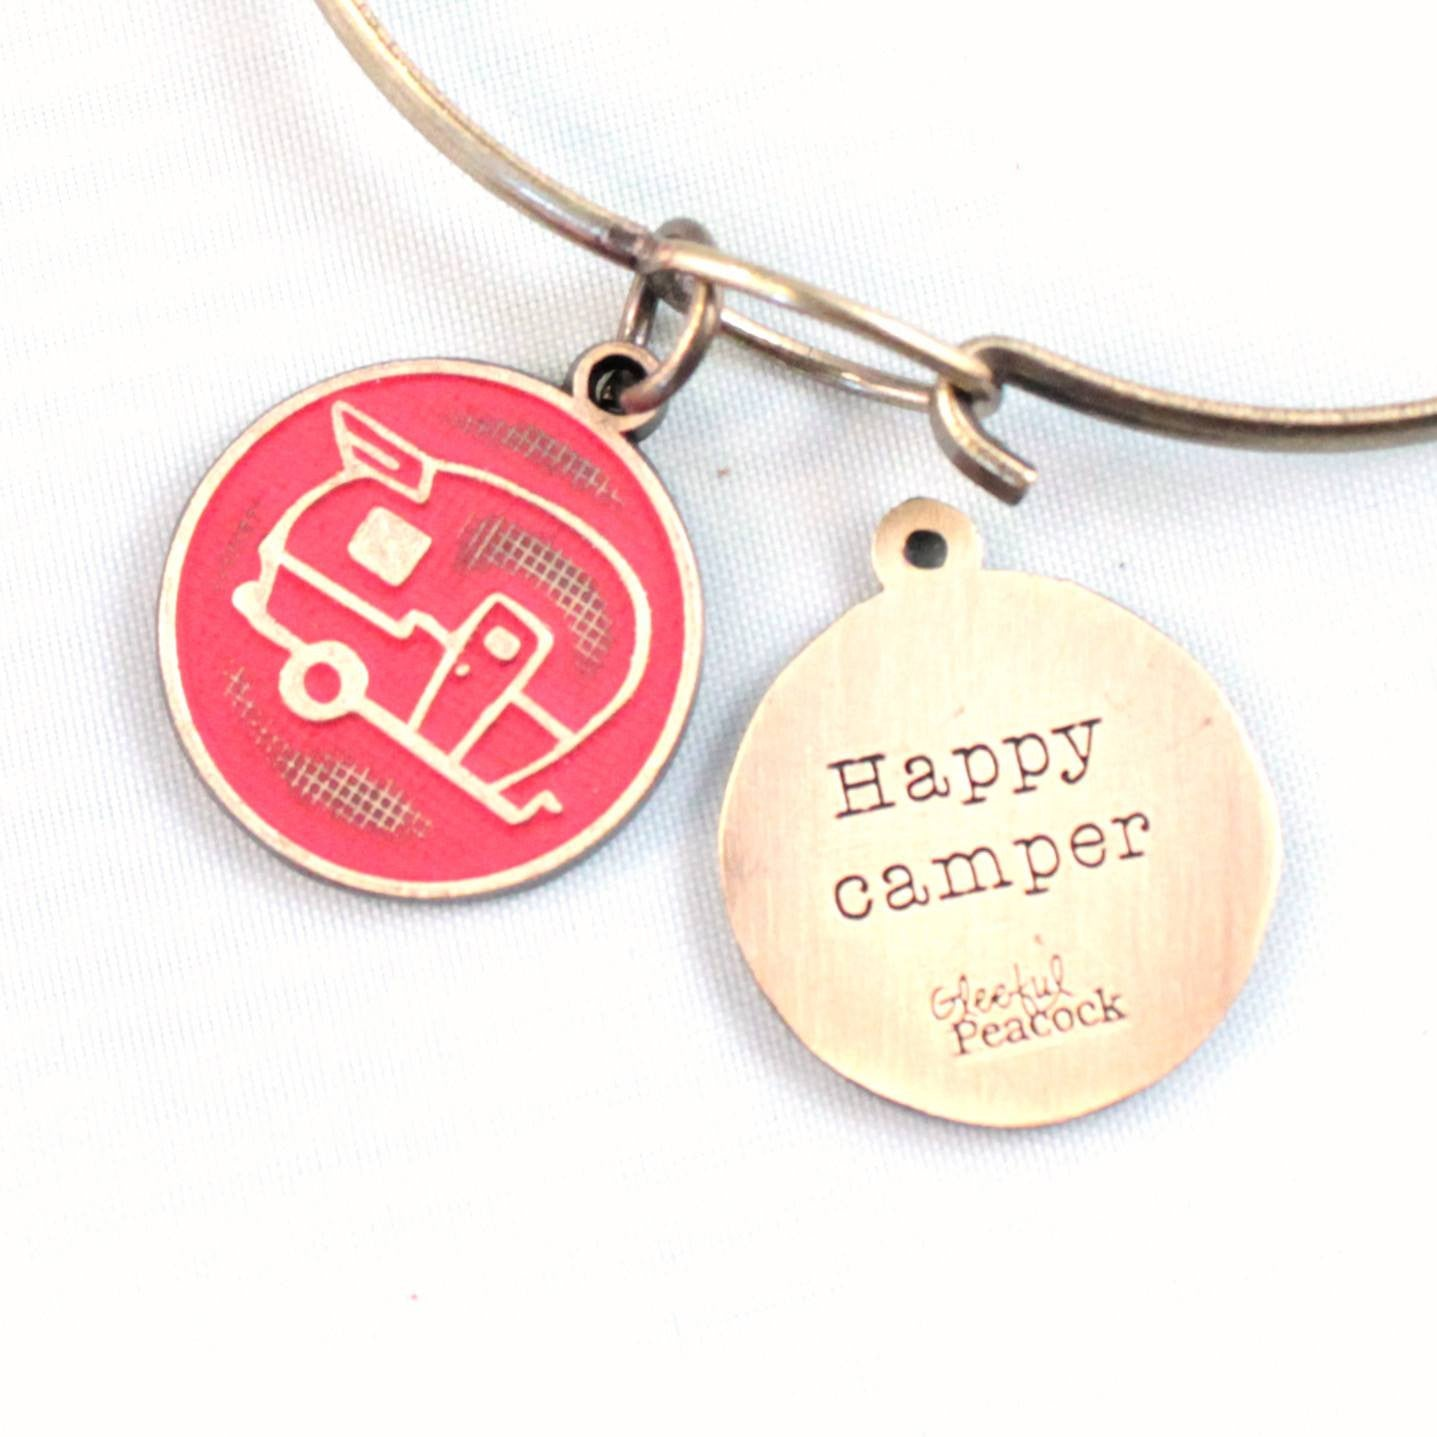 Happy Camper Token Charm Bracelet or Necklace